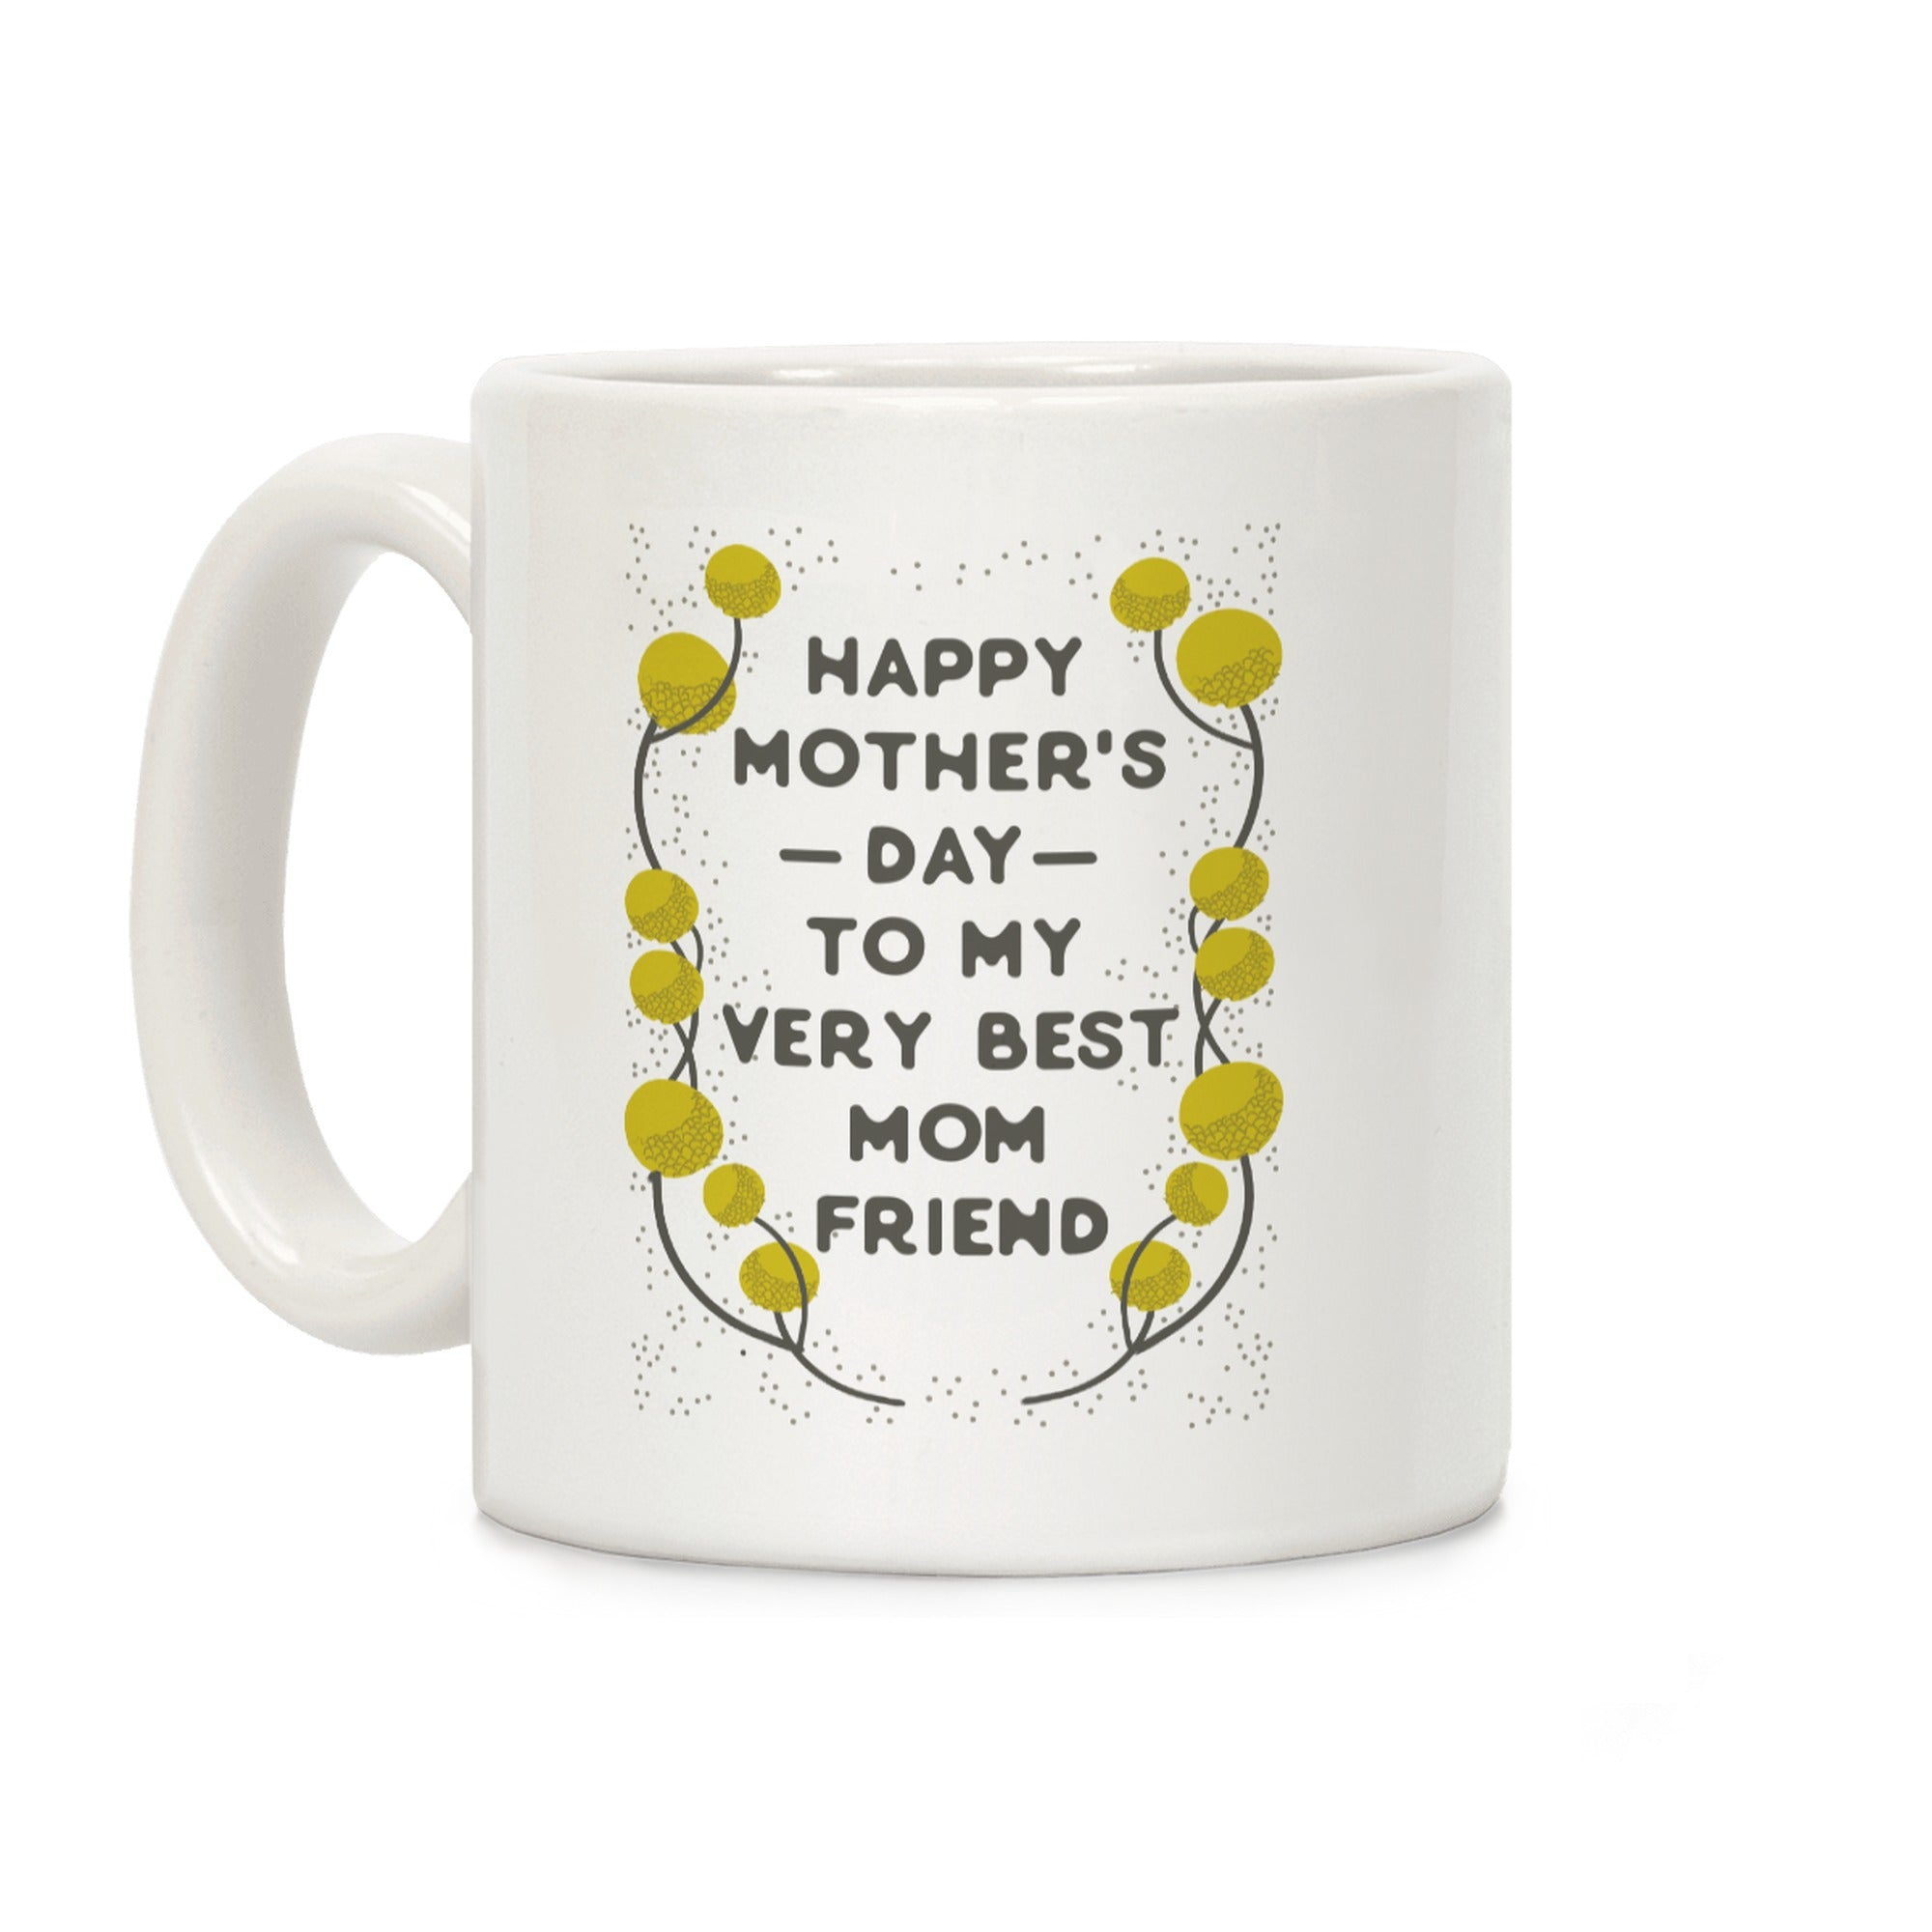 Happy Mother's Day To My Very Best Mom Friend Ceramic Coffee Mug by LookHUMAN